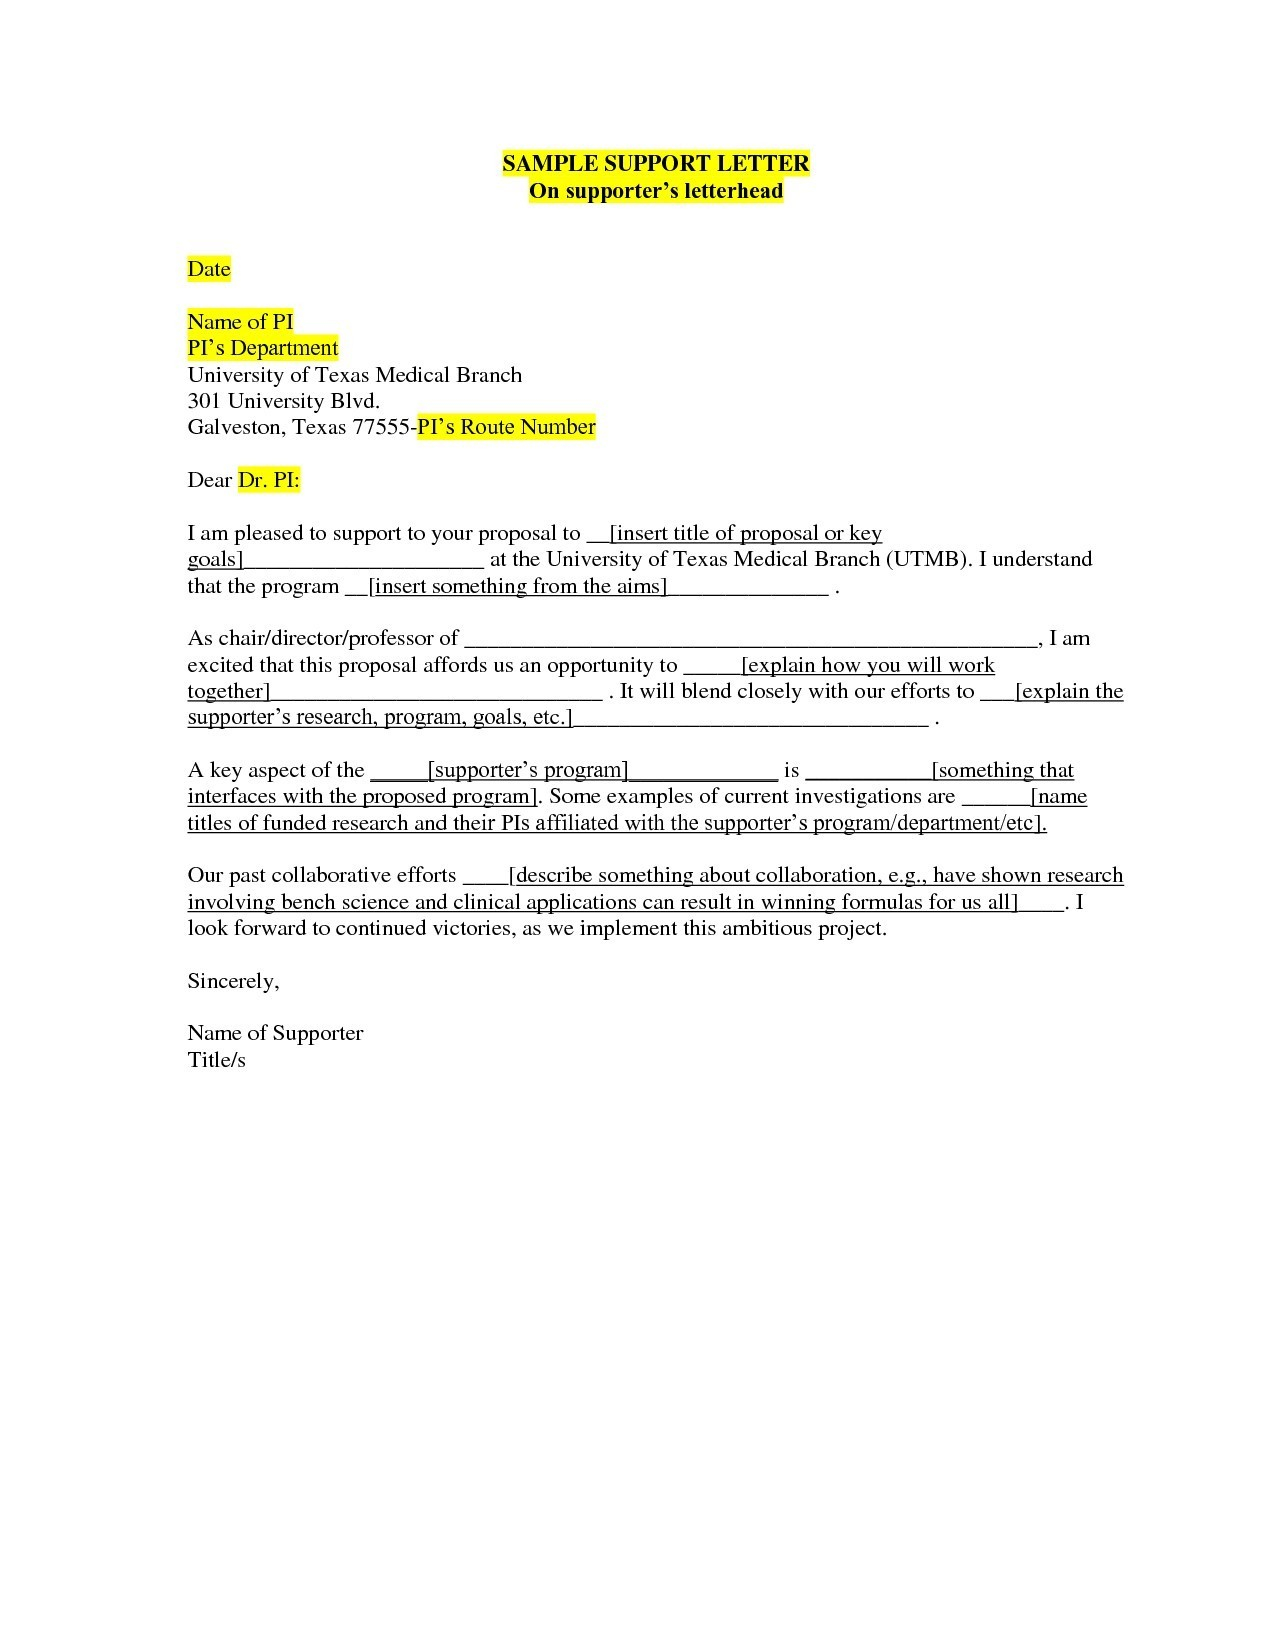 mission support letter template letter to the home fice immigration template best sample parole